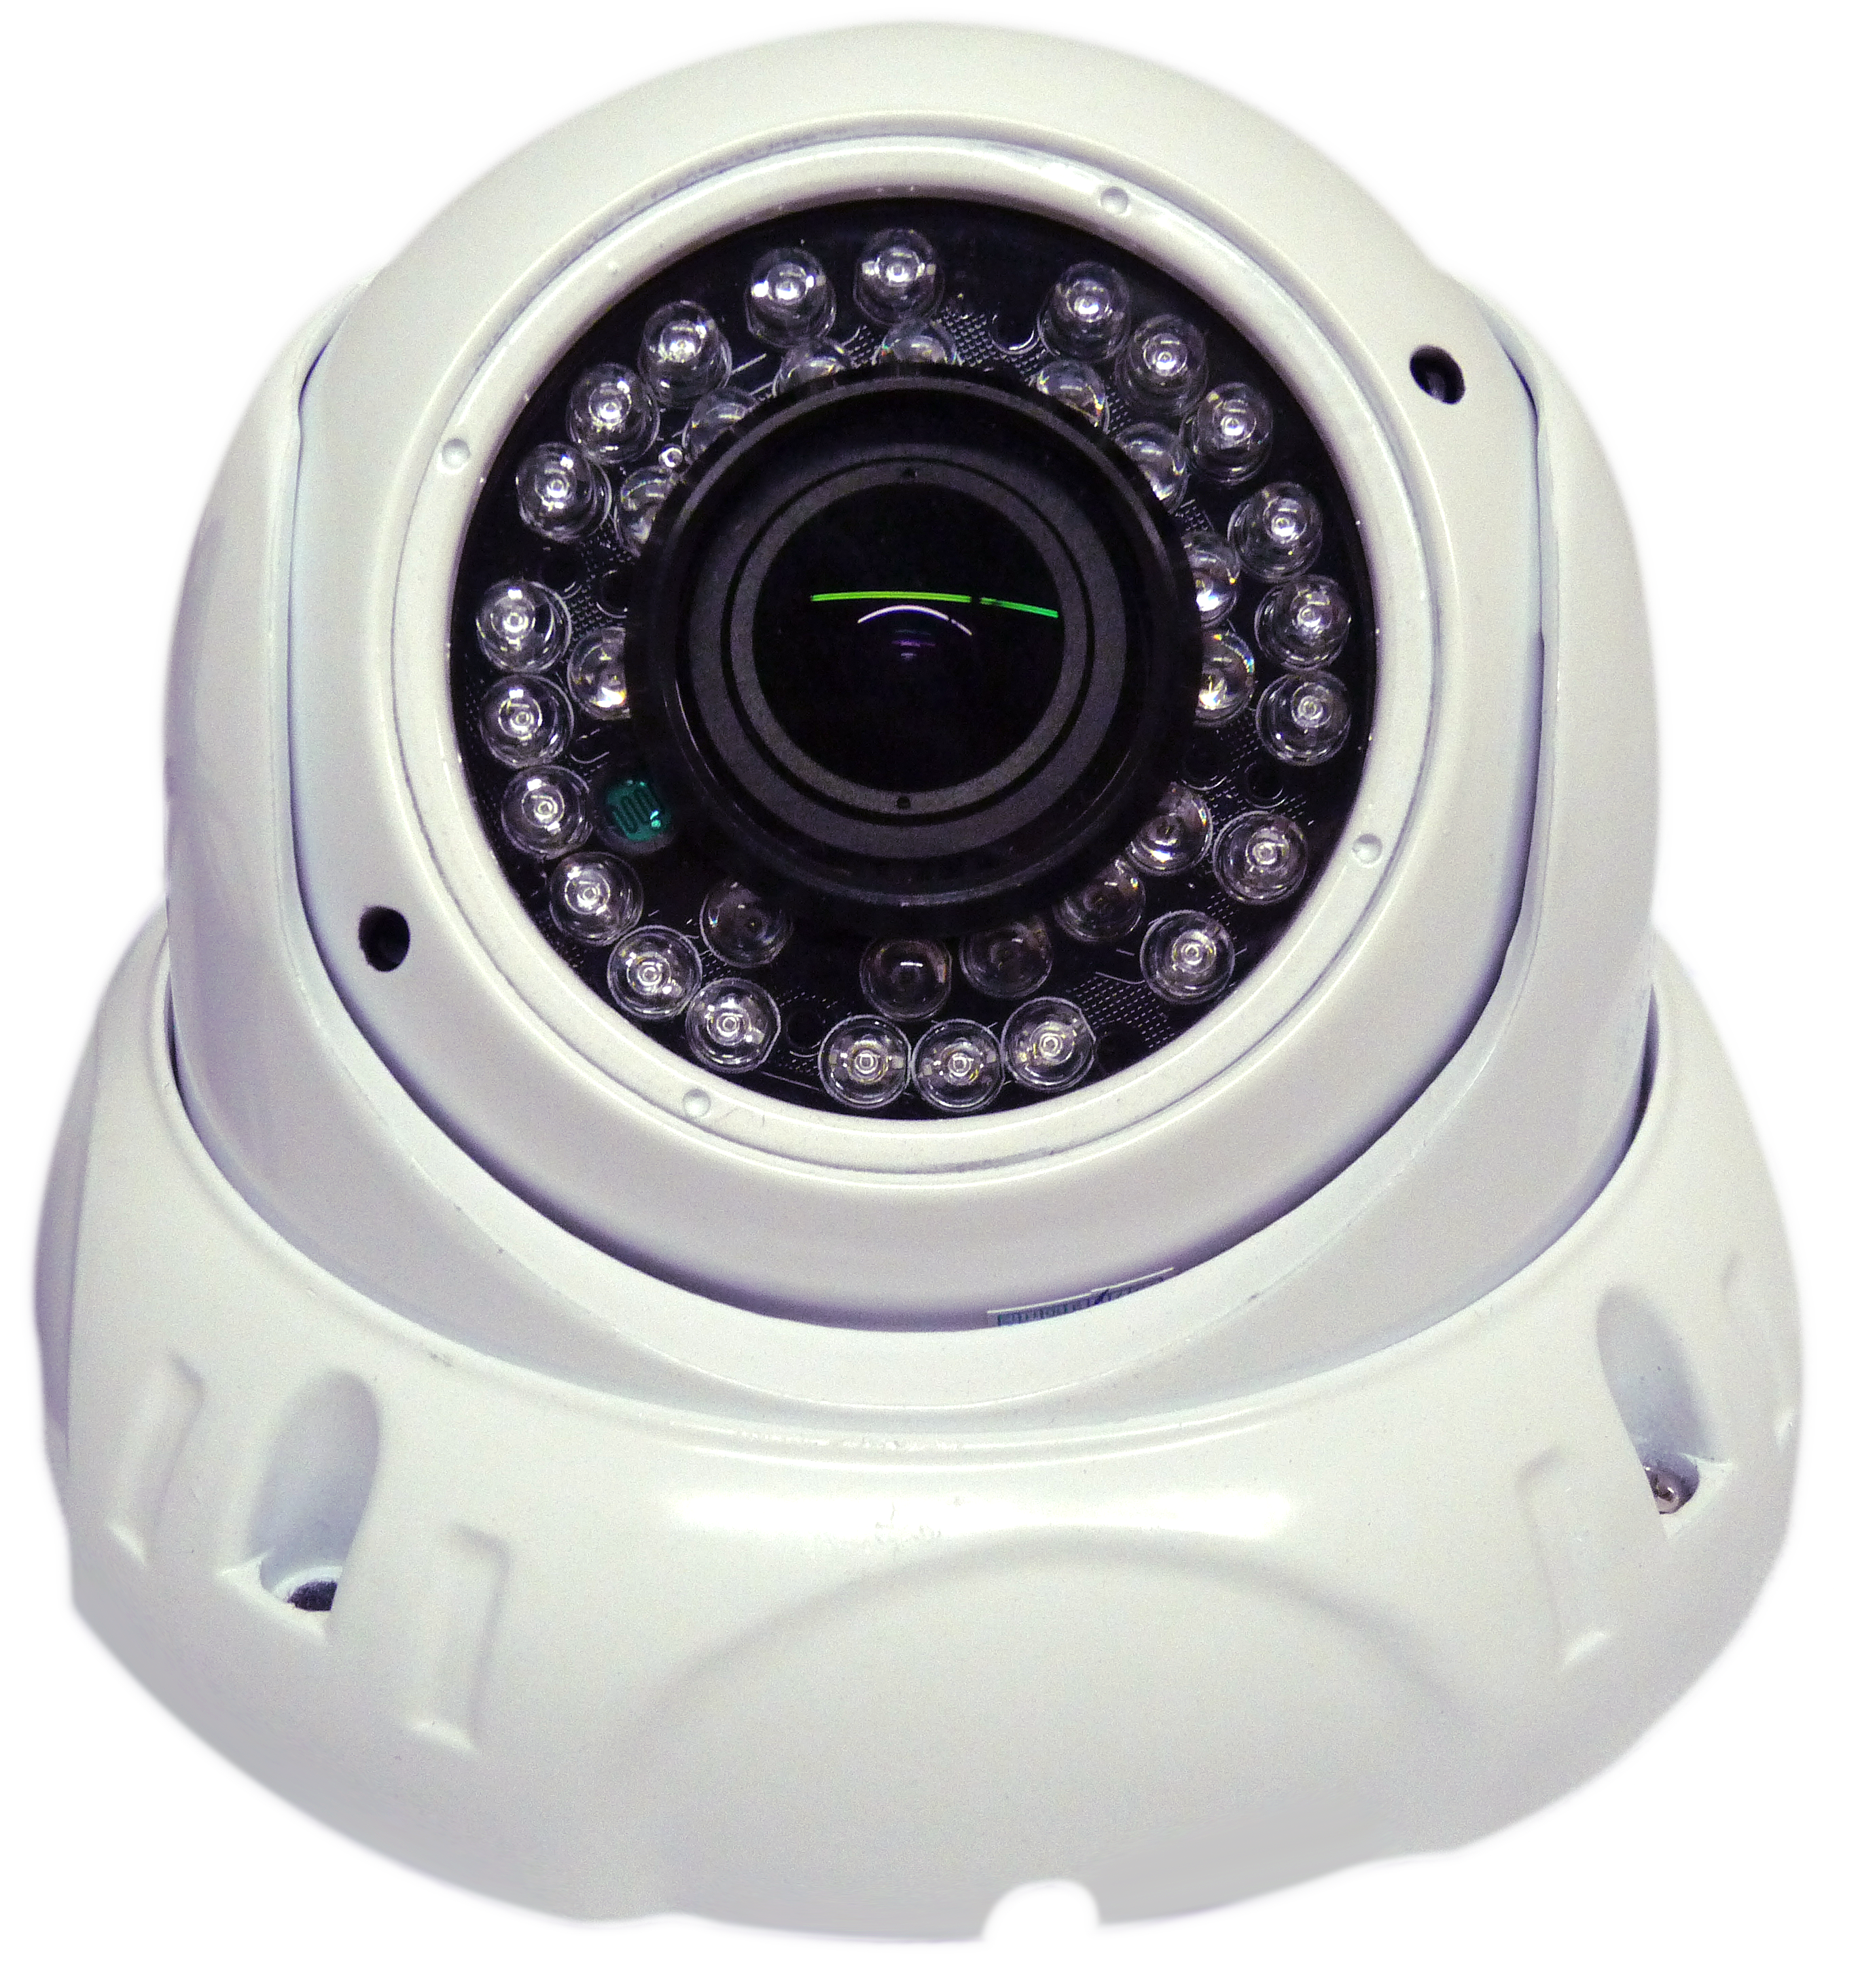 Image for DBS R610W - 700TVL CCTV Dome Security Camera - 1/3'' Sony Super HAD CCD II